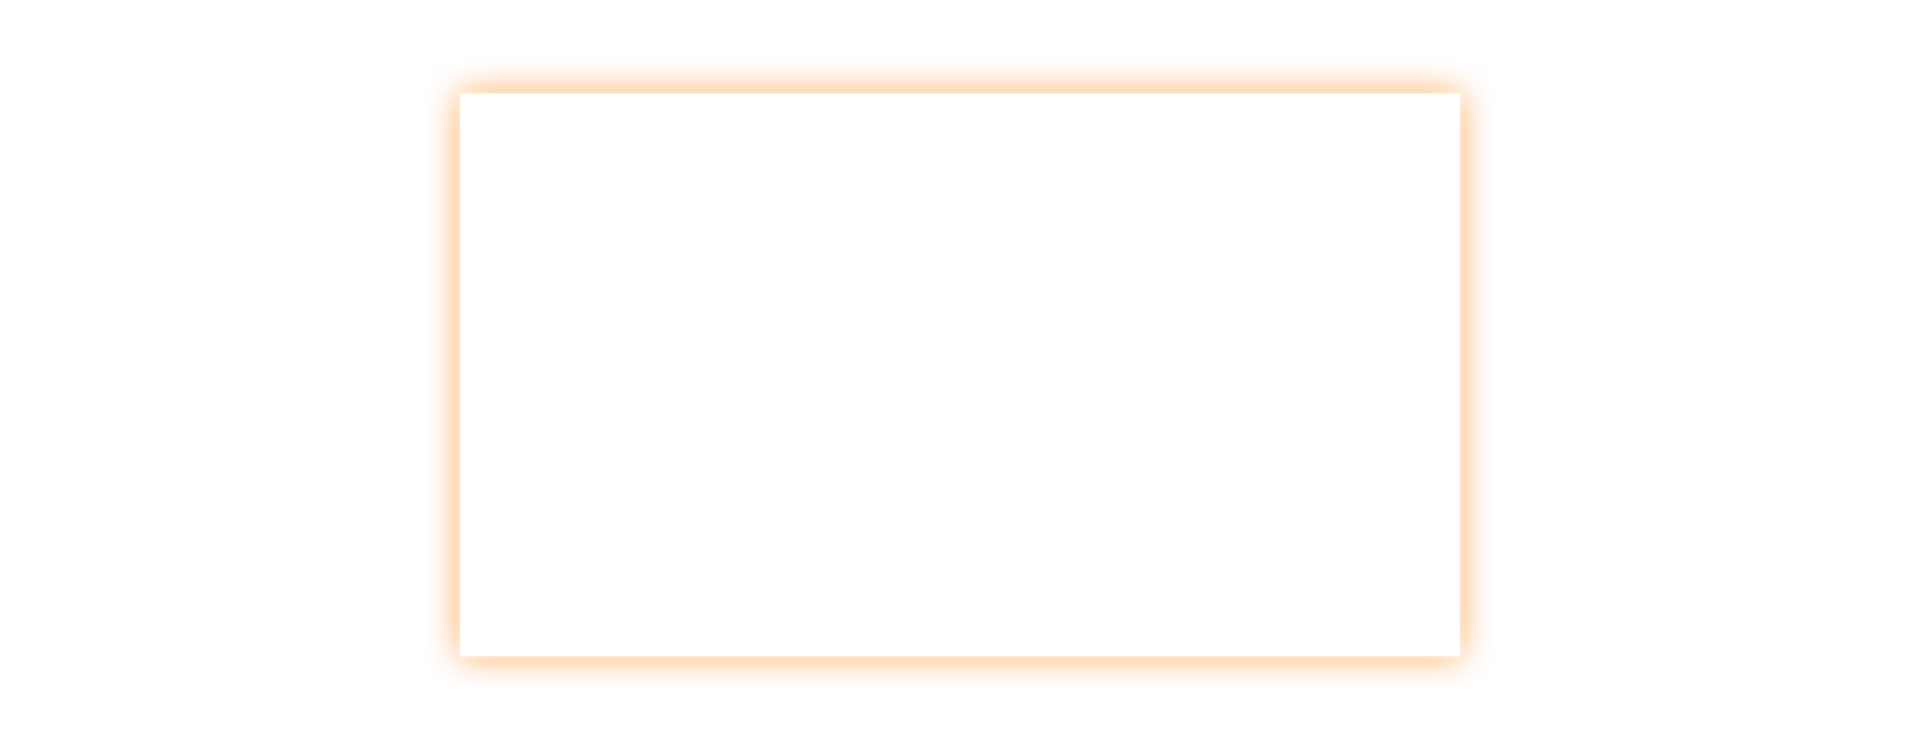 AOCG_G2_RESOLUTION_QHD_FRONT.png